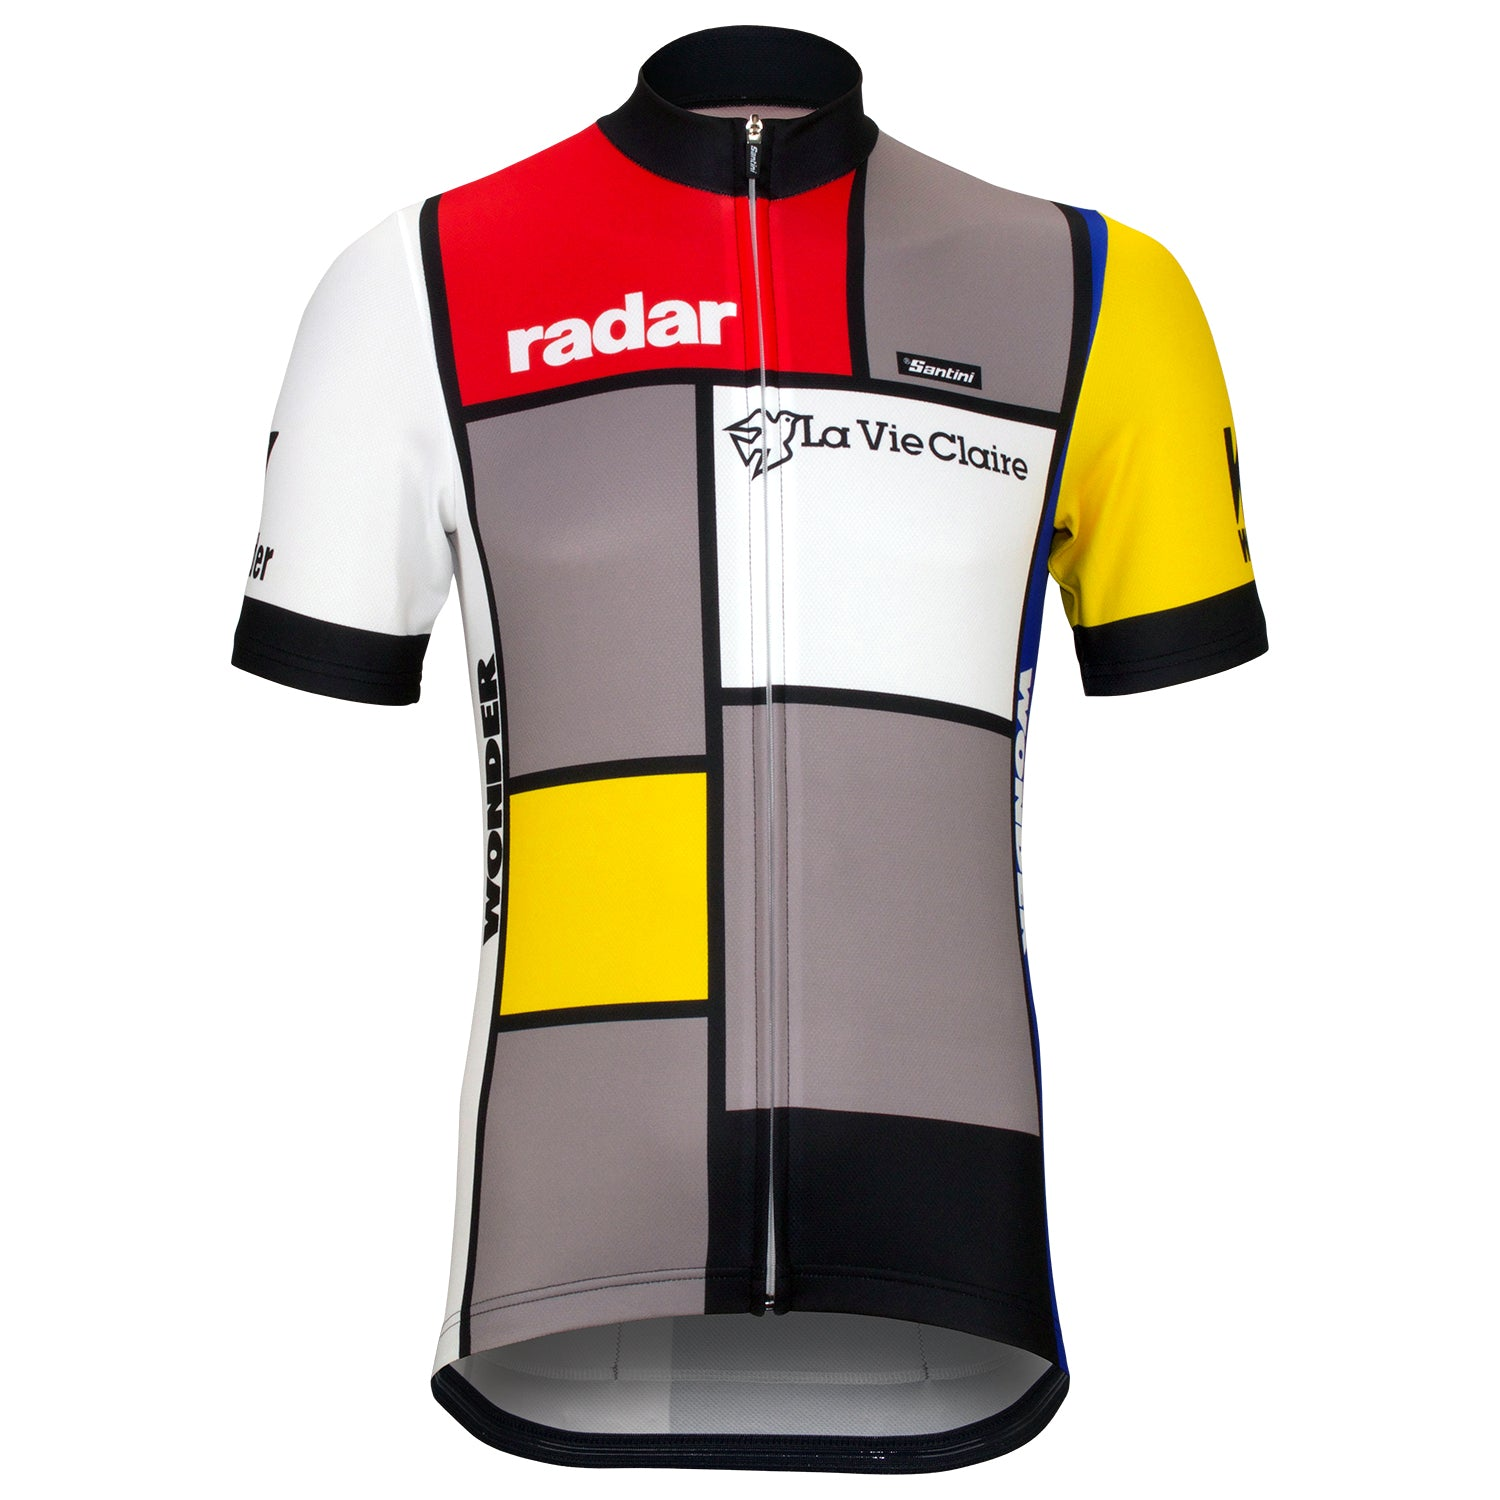 cb2ac9a09 Cycling jerseys available to buy with short sleeves or long sleeves ...